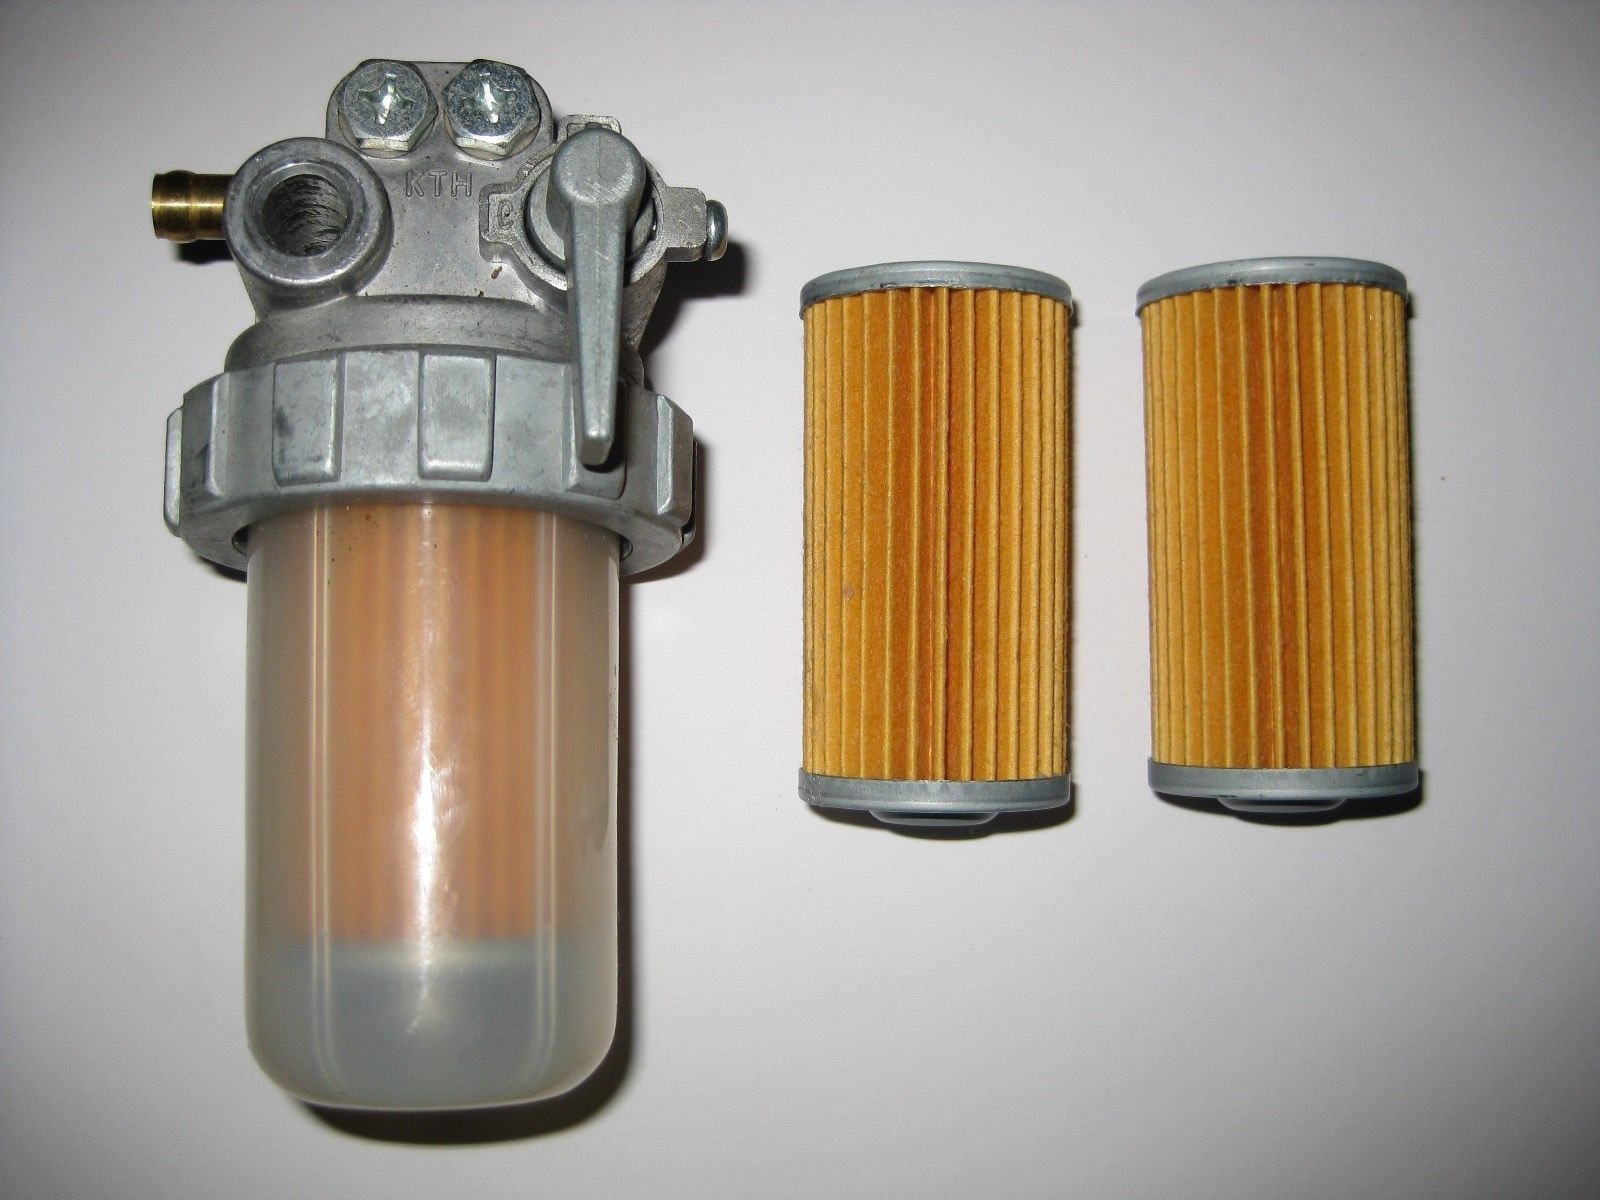 kubota model fuel filter valve 2 spare elements 104500 55710 ebay [ 1600 x 1200 Pixel ]